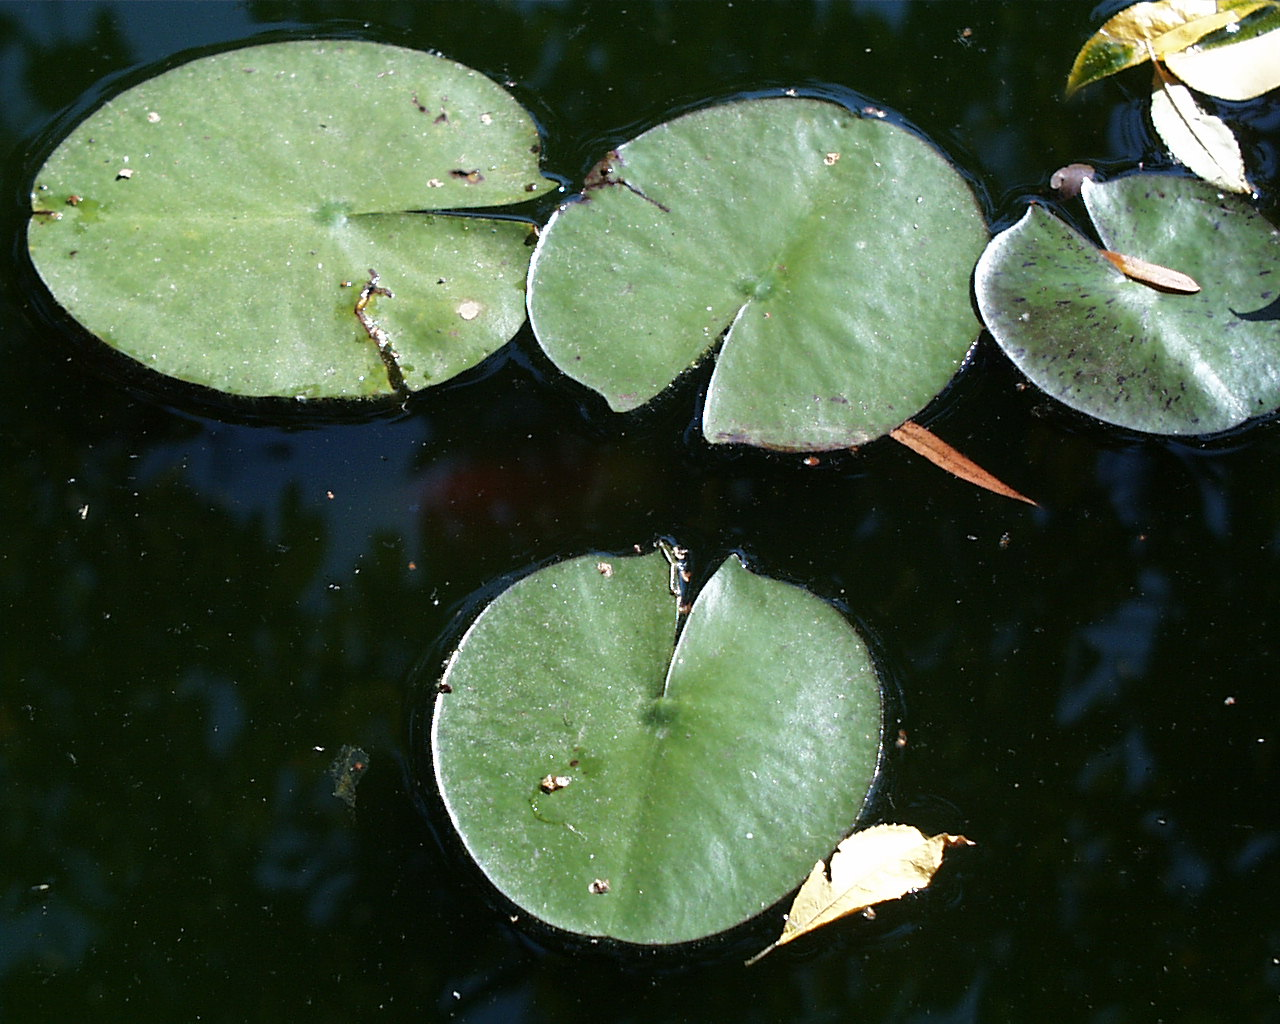 images of a lilly pad